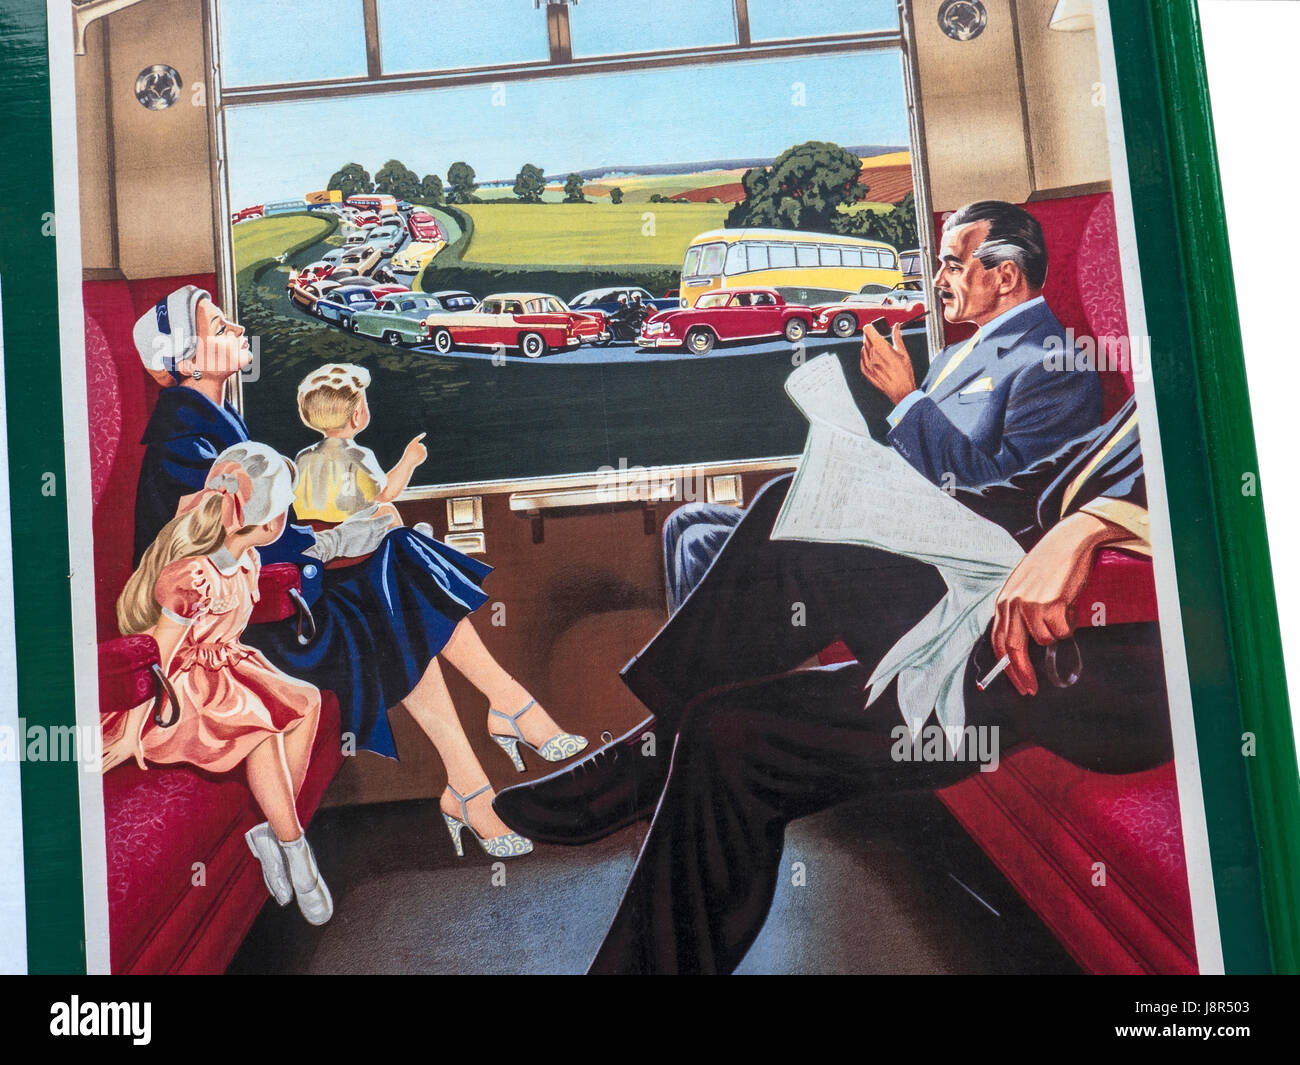 Detail close up on Vintage retro 1950's British Railways poster showing calm relaxed train passengers with traffic - Stock Image